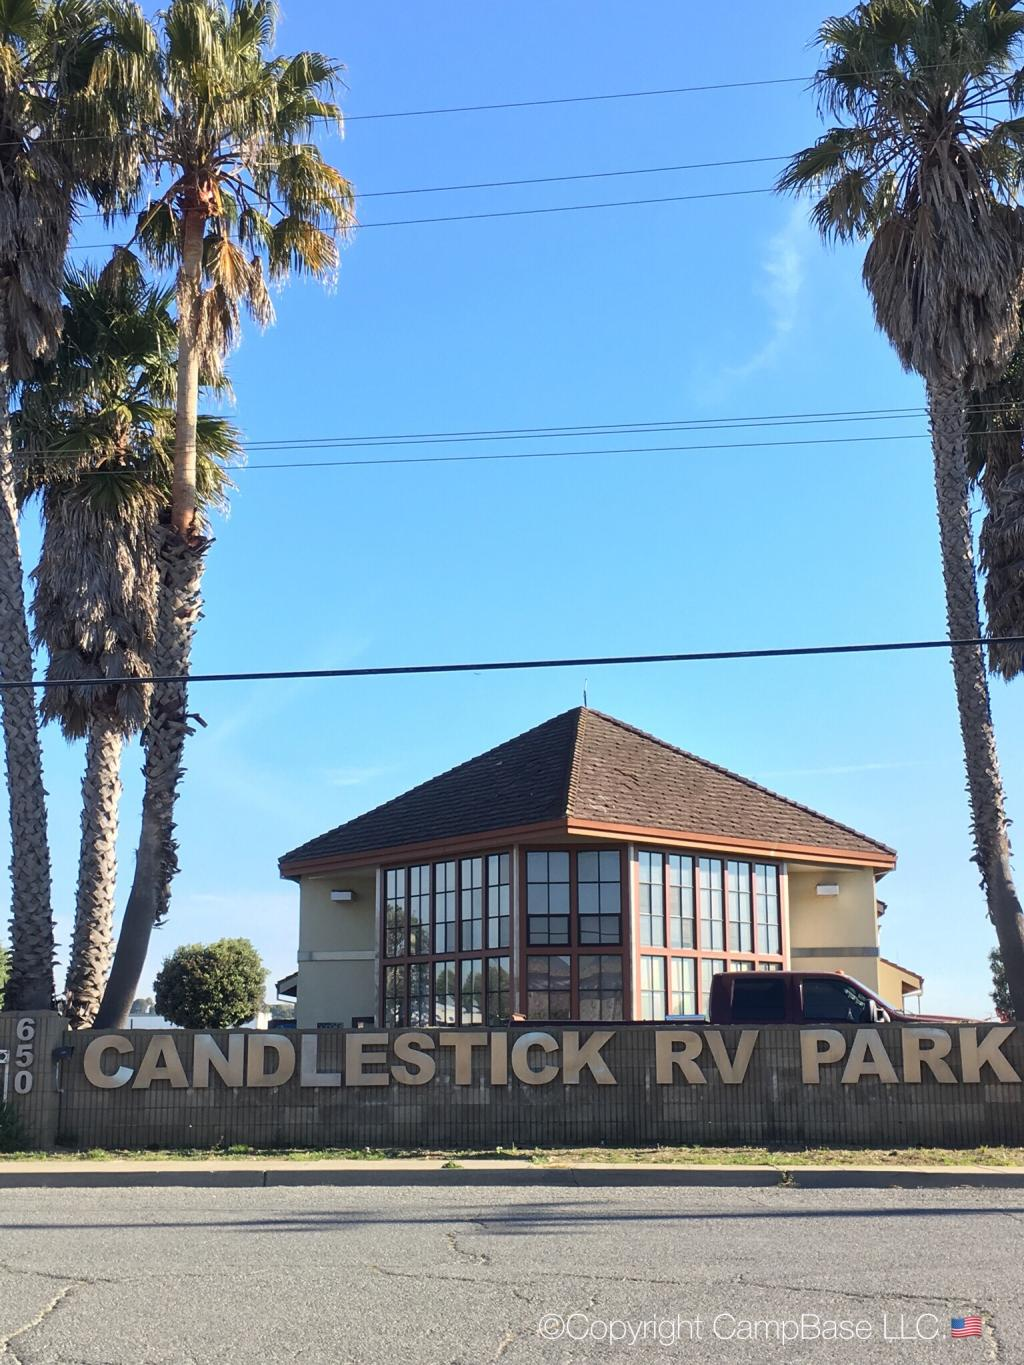 Candlestick Rv Park San Francisco California